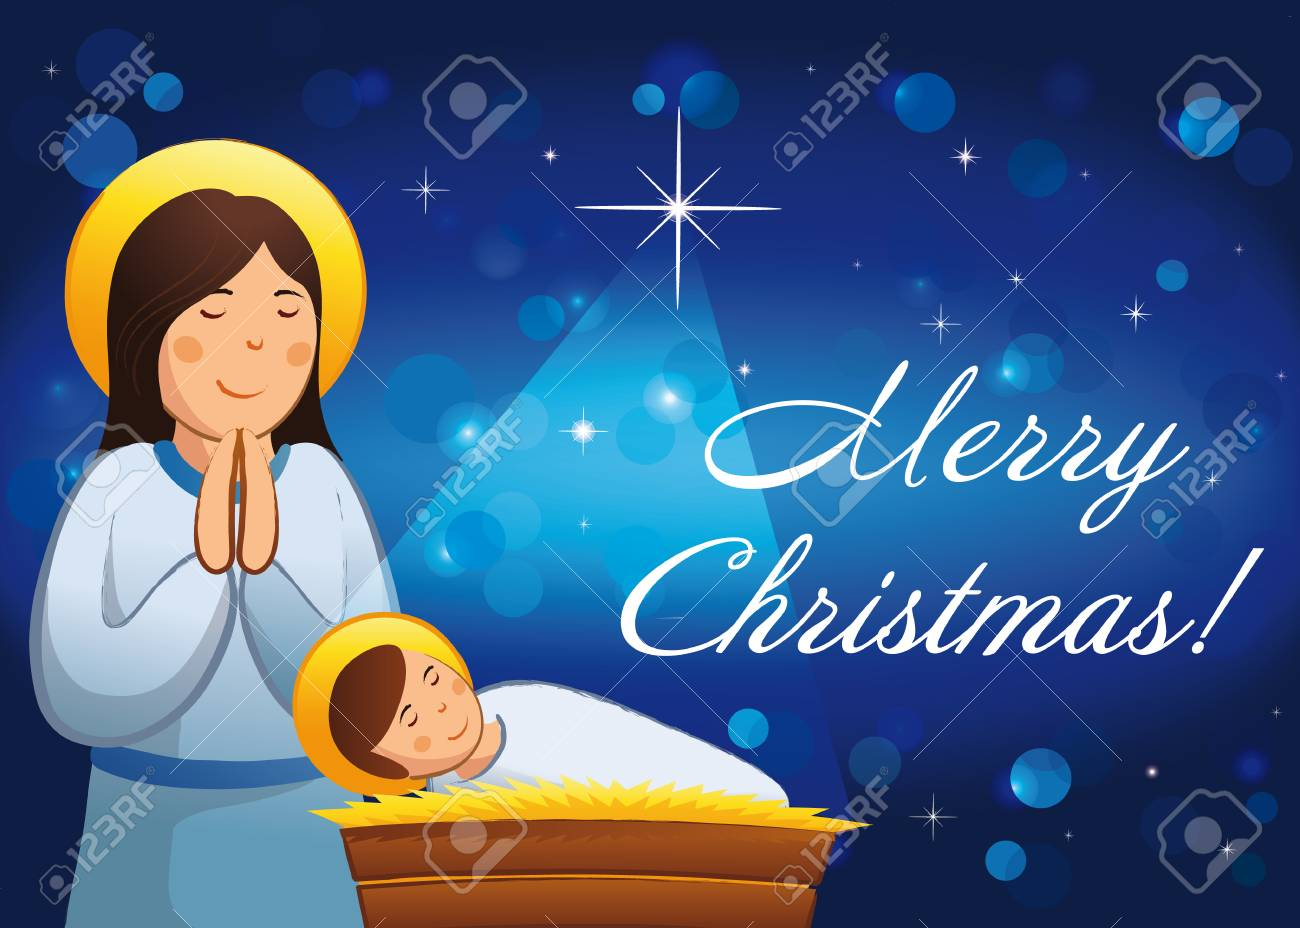 Merry Christmas, A Happy New Year Religious Greetings. Celebrating ...